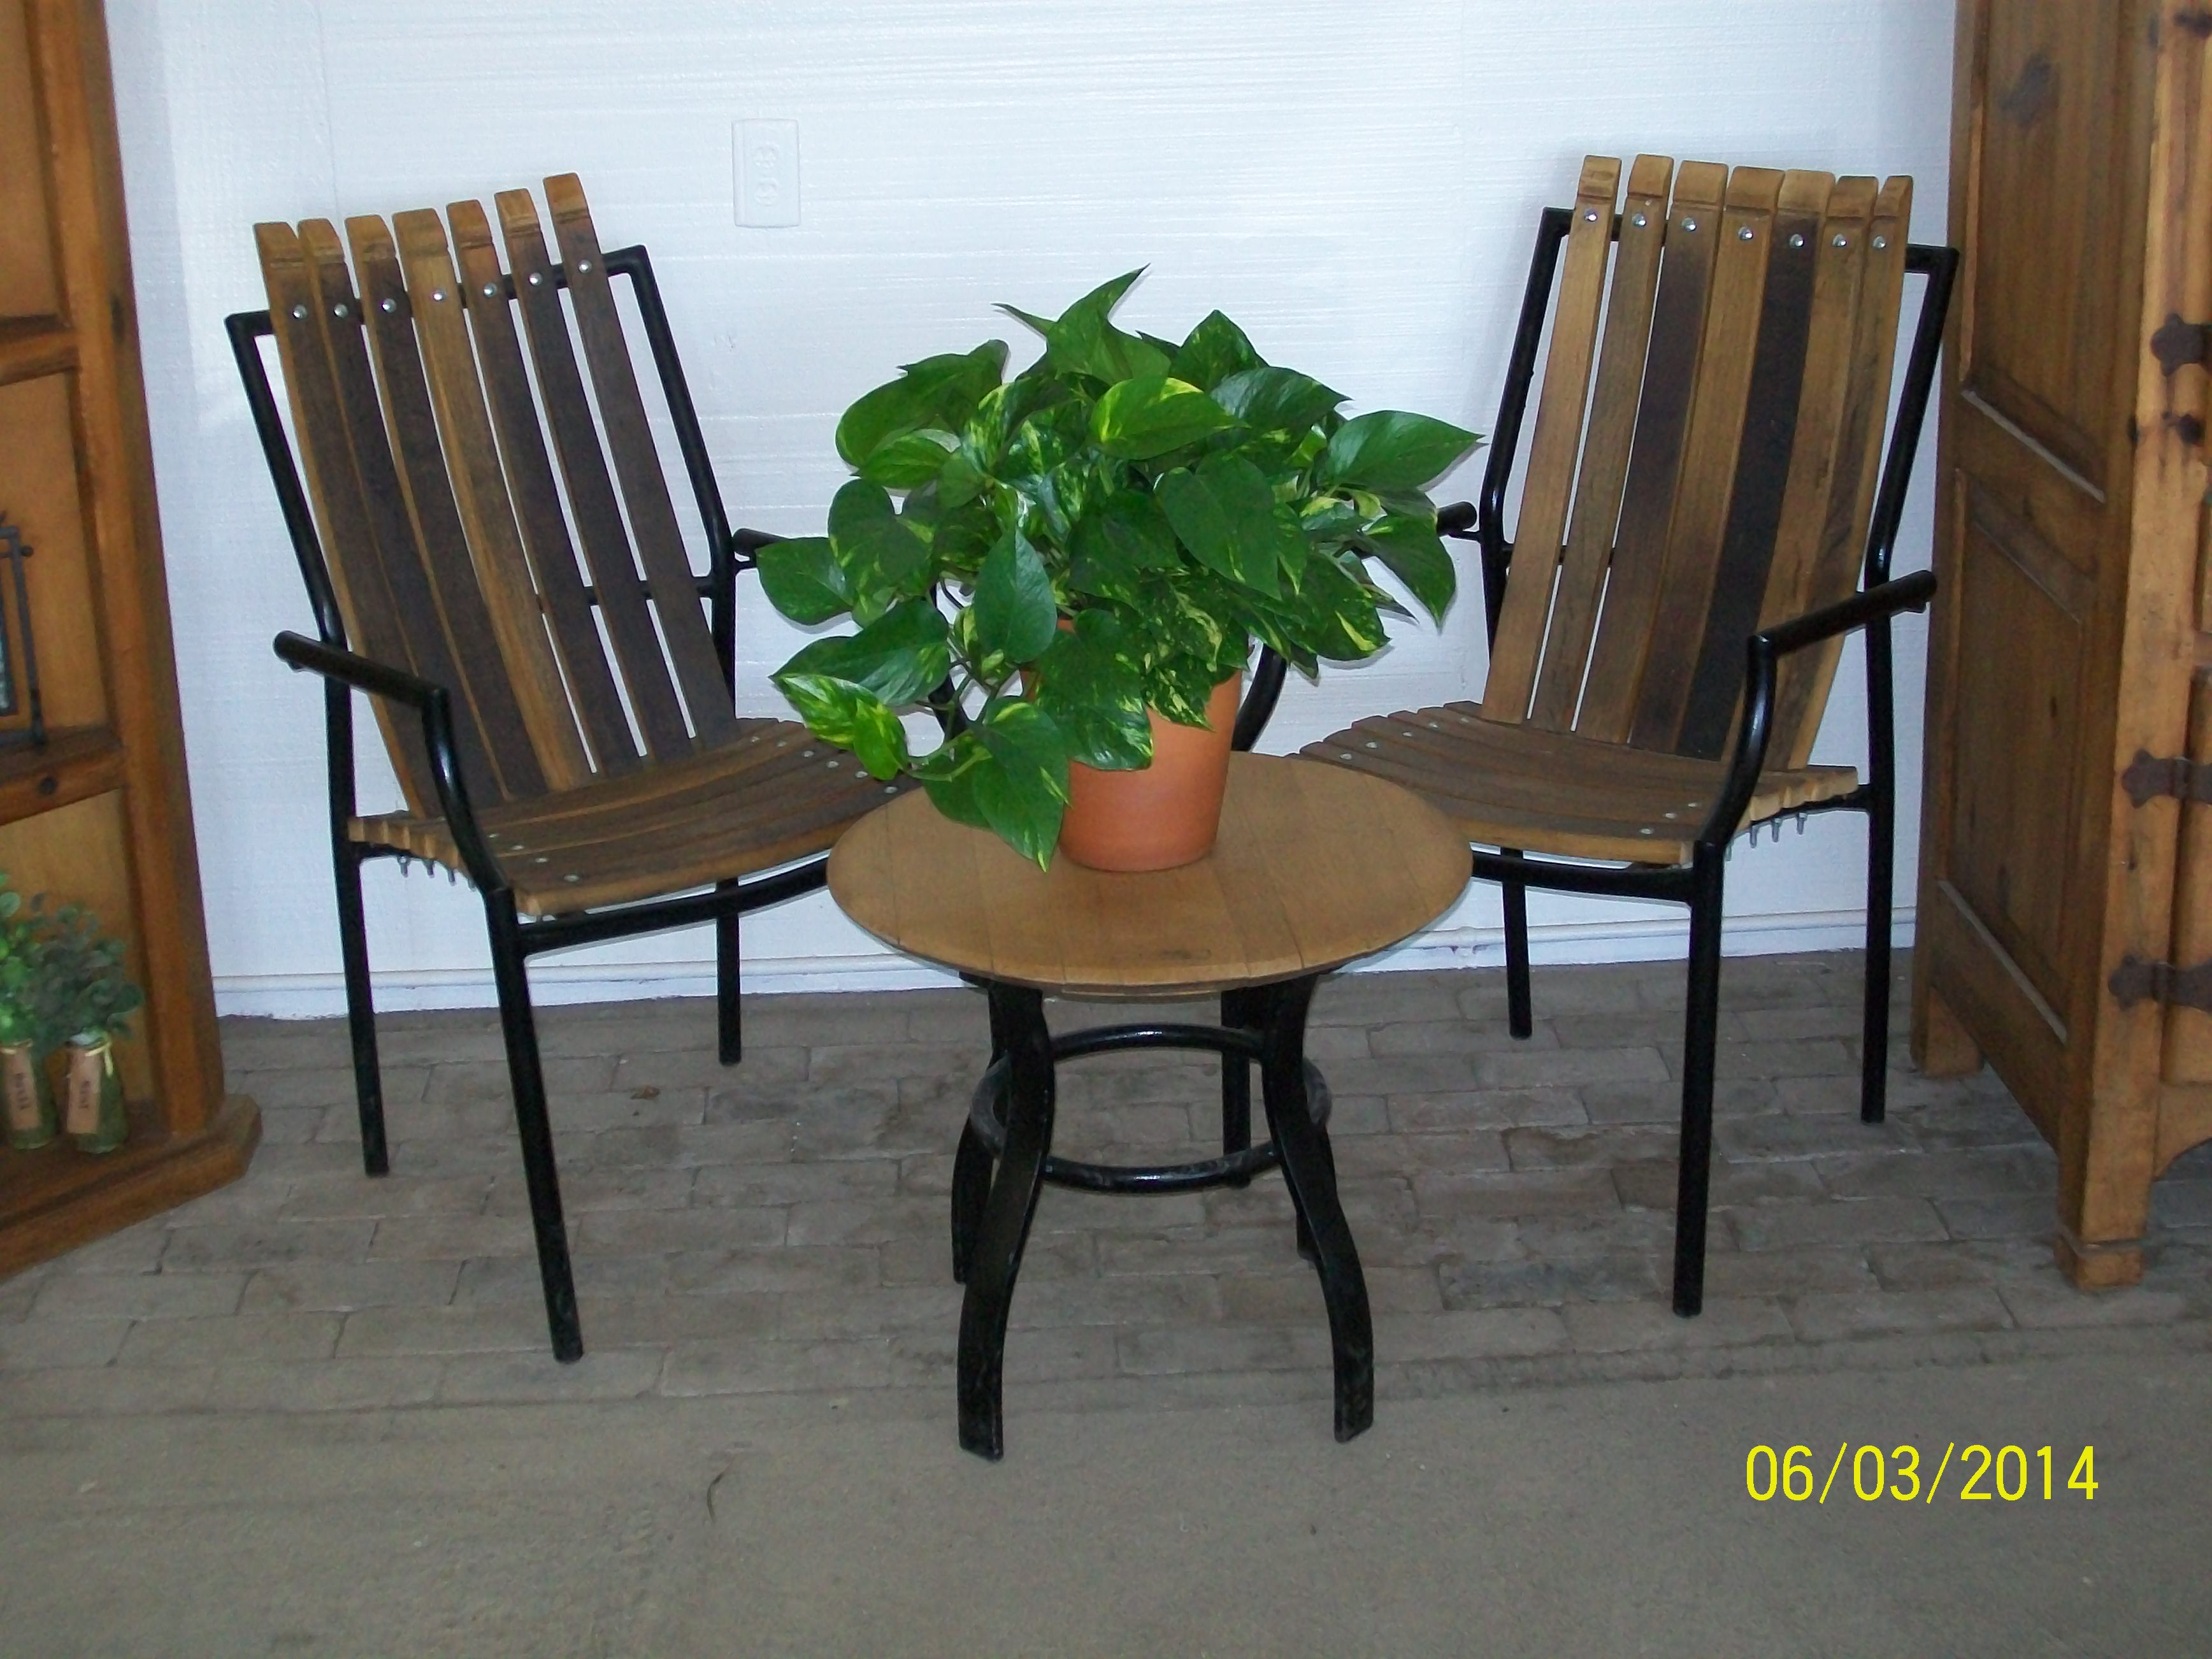 G patio chairs & Table style3.JPG